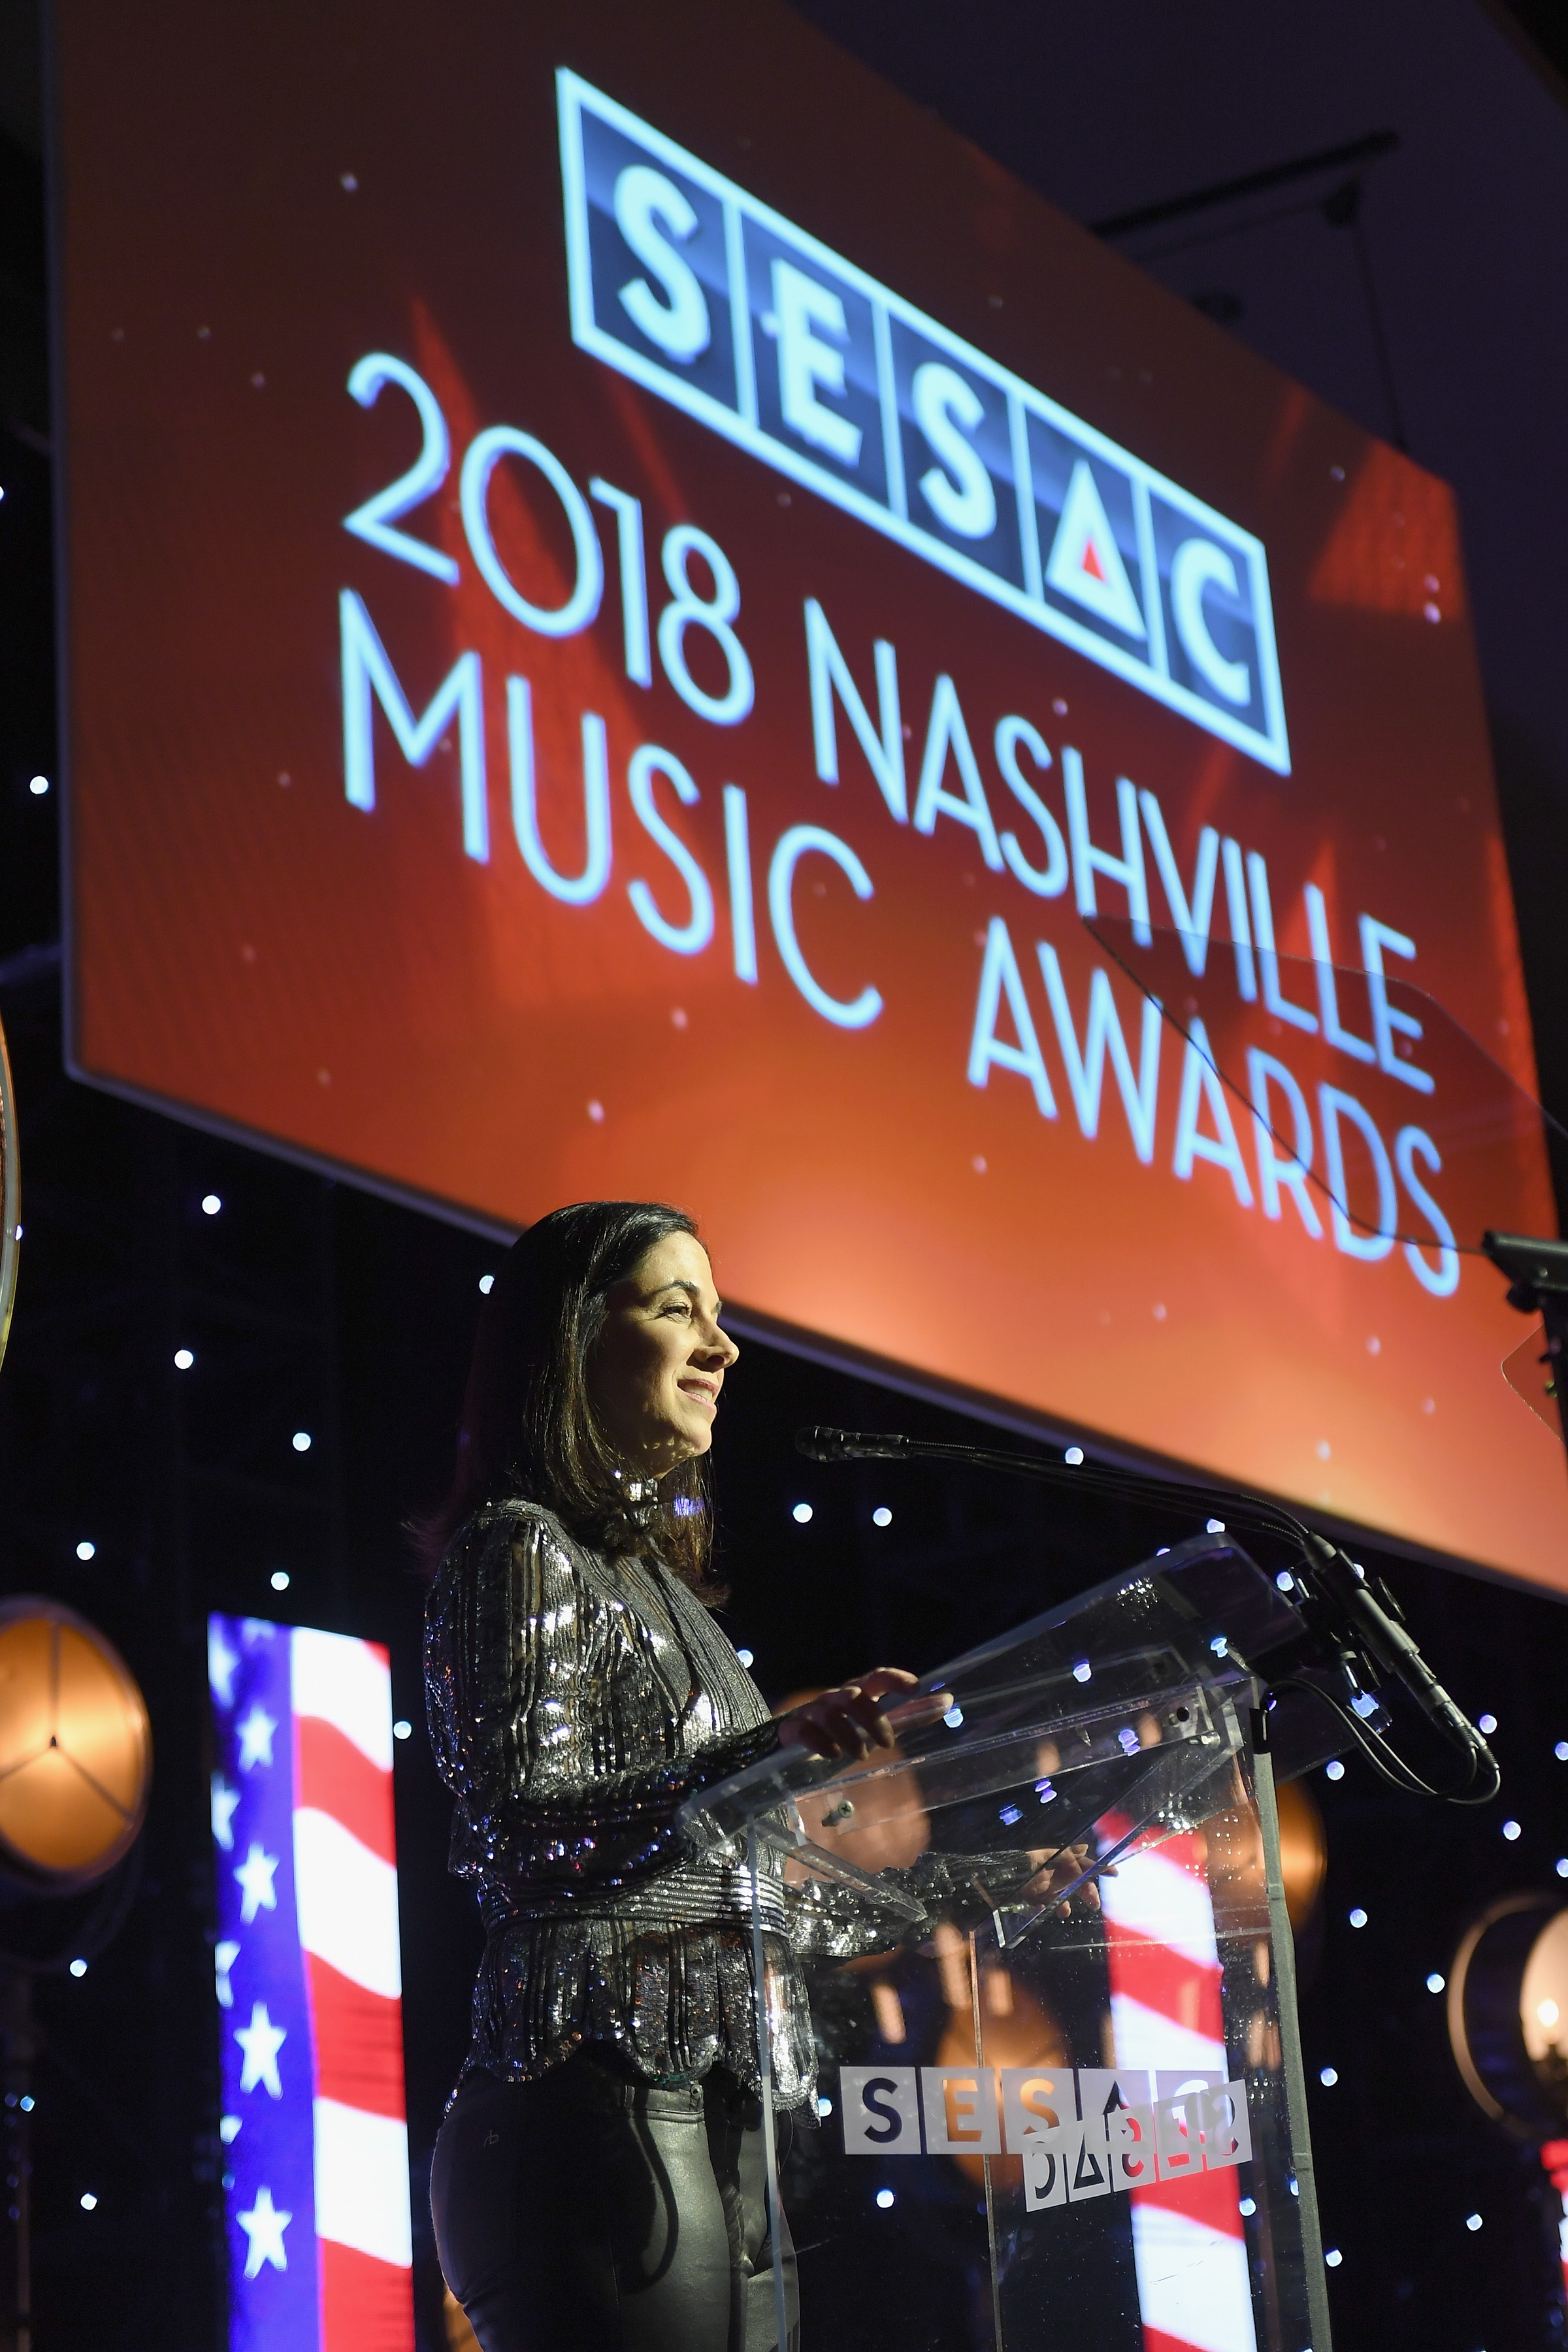 onstage during the 2018 SESAC Nashville Music Awards at Country Music Hall of Fame and Museum on November 11, 2018 in Nashville, Tennessee.